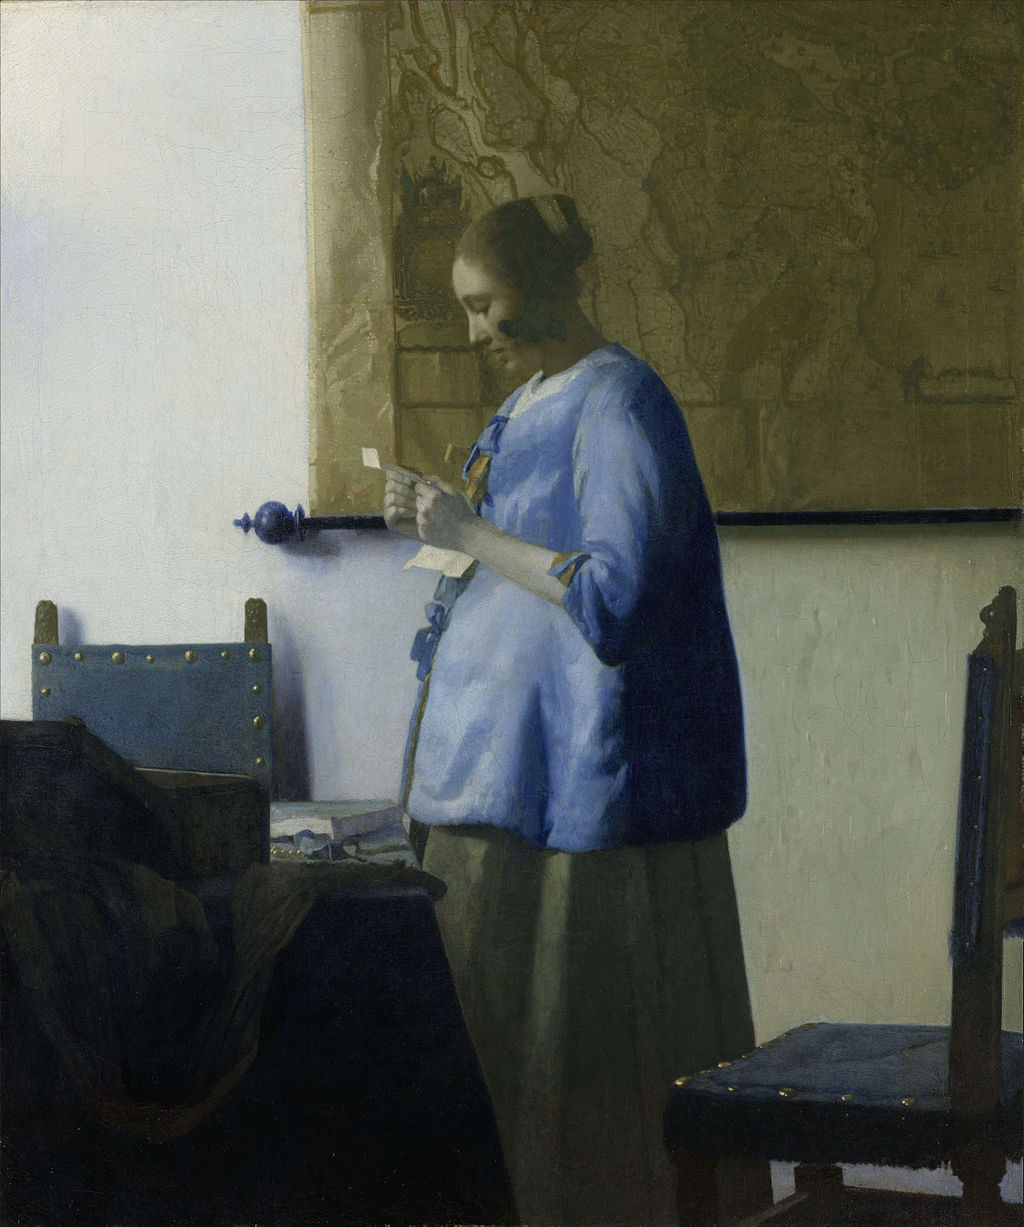 Vermeer, Johannes - Woman reading a letter - ca. 1662-1663